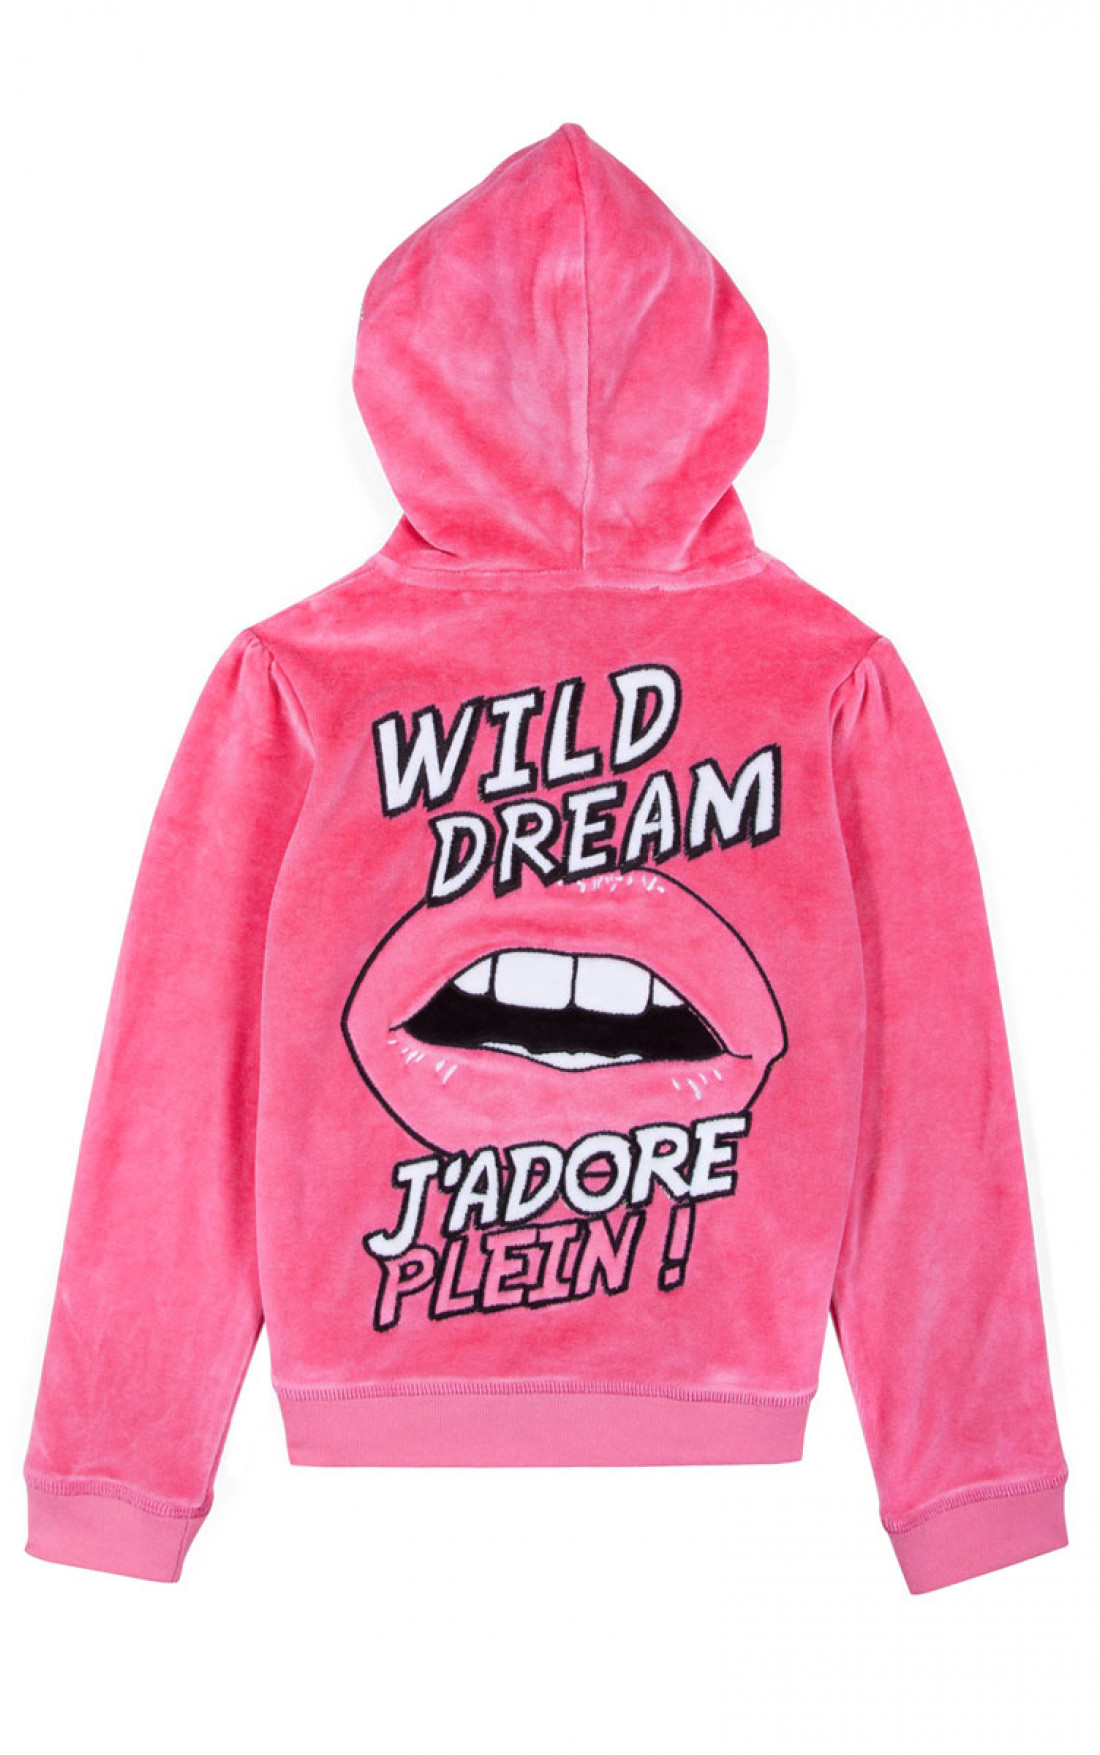 philipp plein sweat jacket girls blow pink sweat jacket kids sweat jacket online boudi. Black Bedroom Furniture Sets. Home Design Ideas